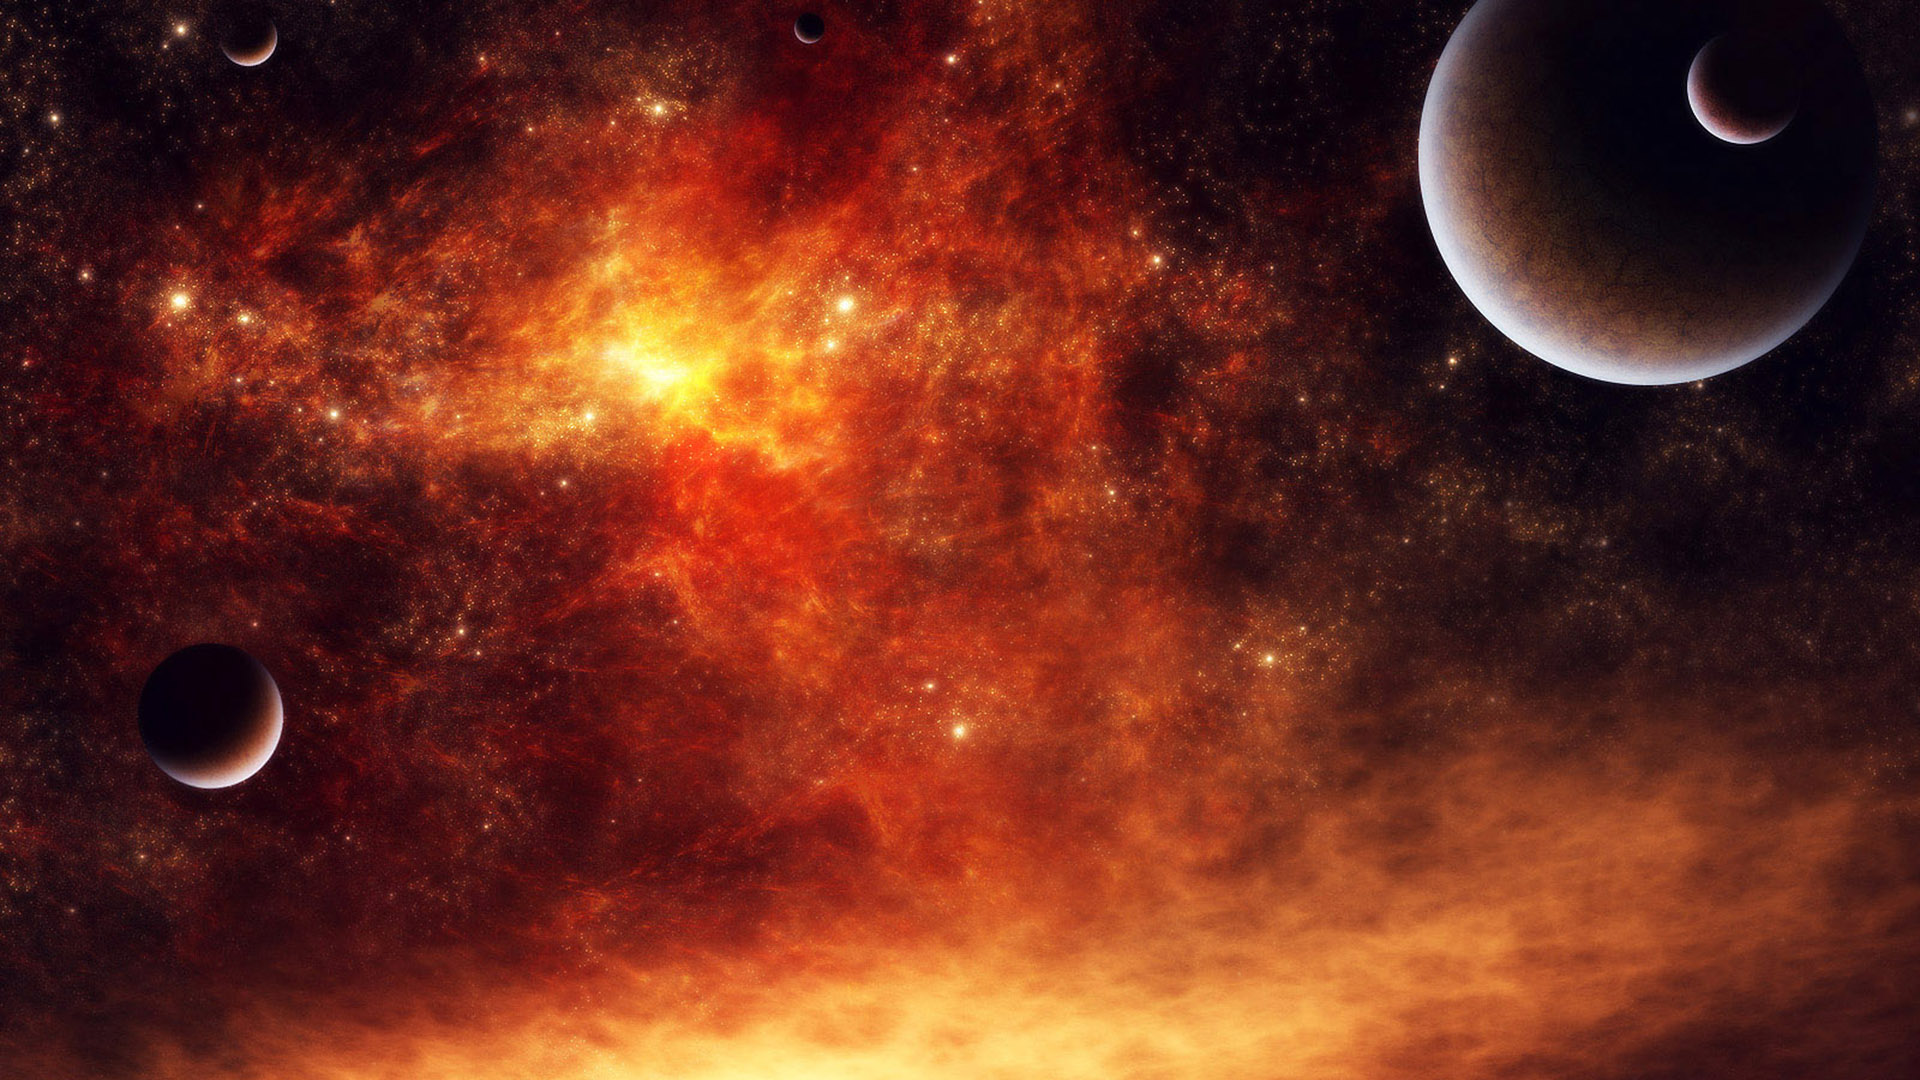 com Red Fire Space Planets Full 1080p Ultra HD Wallpapers 1920x1080